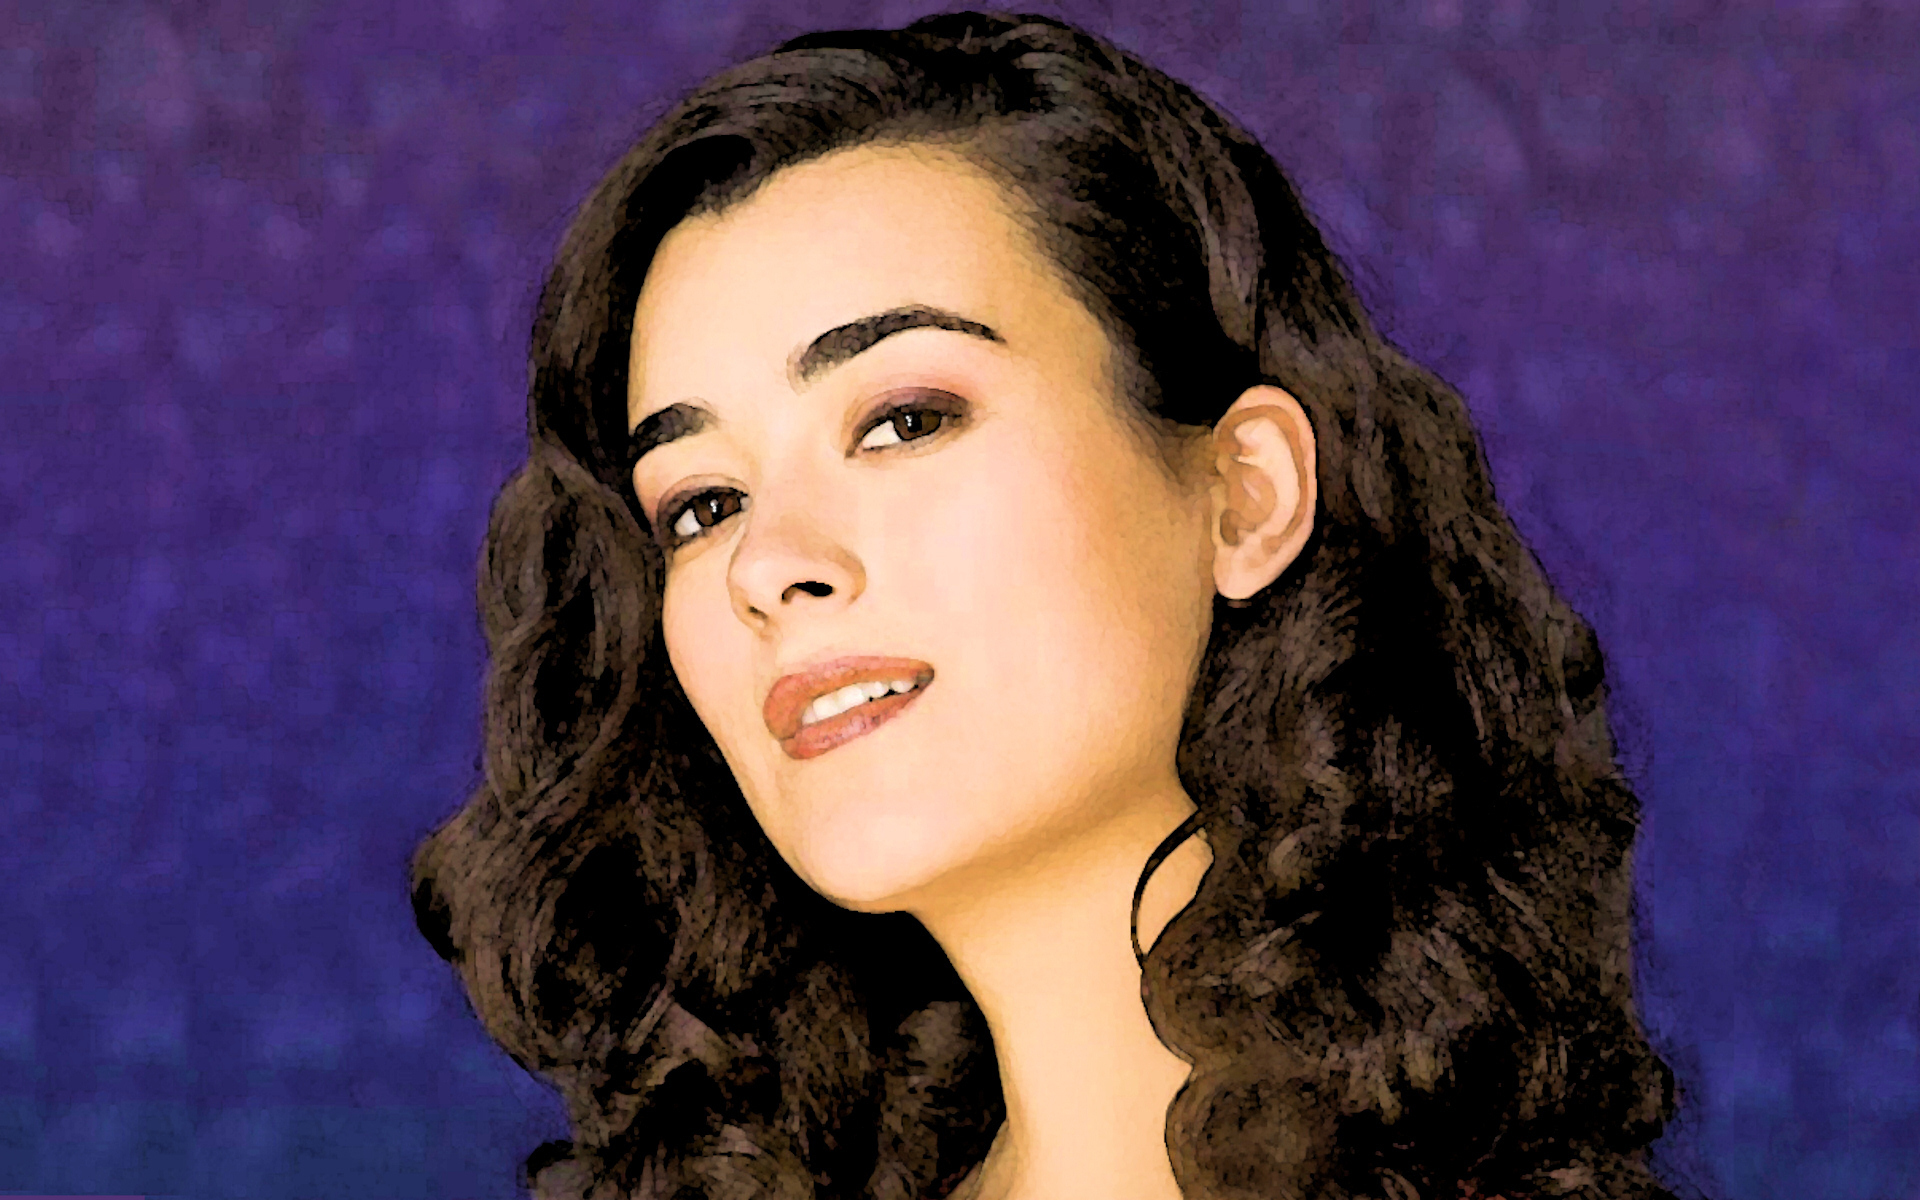 Ziva From NCIS Naked Images | FemaleCelebrity: thefemalecelebrity.info/ziva-from-ncis-naked.html